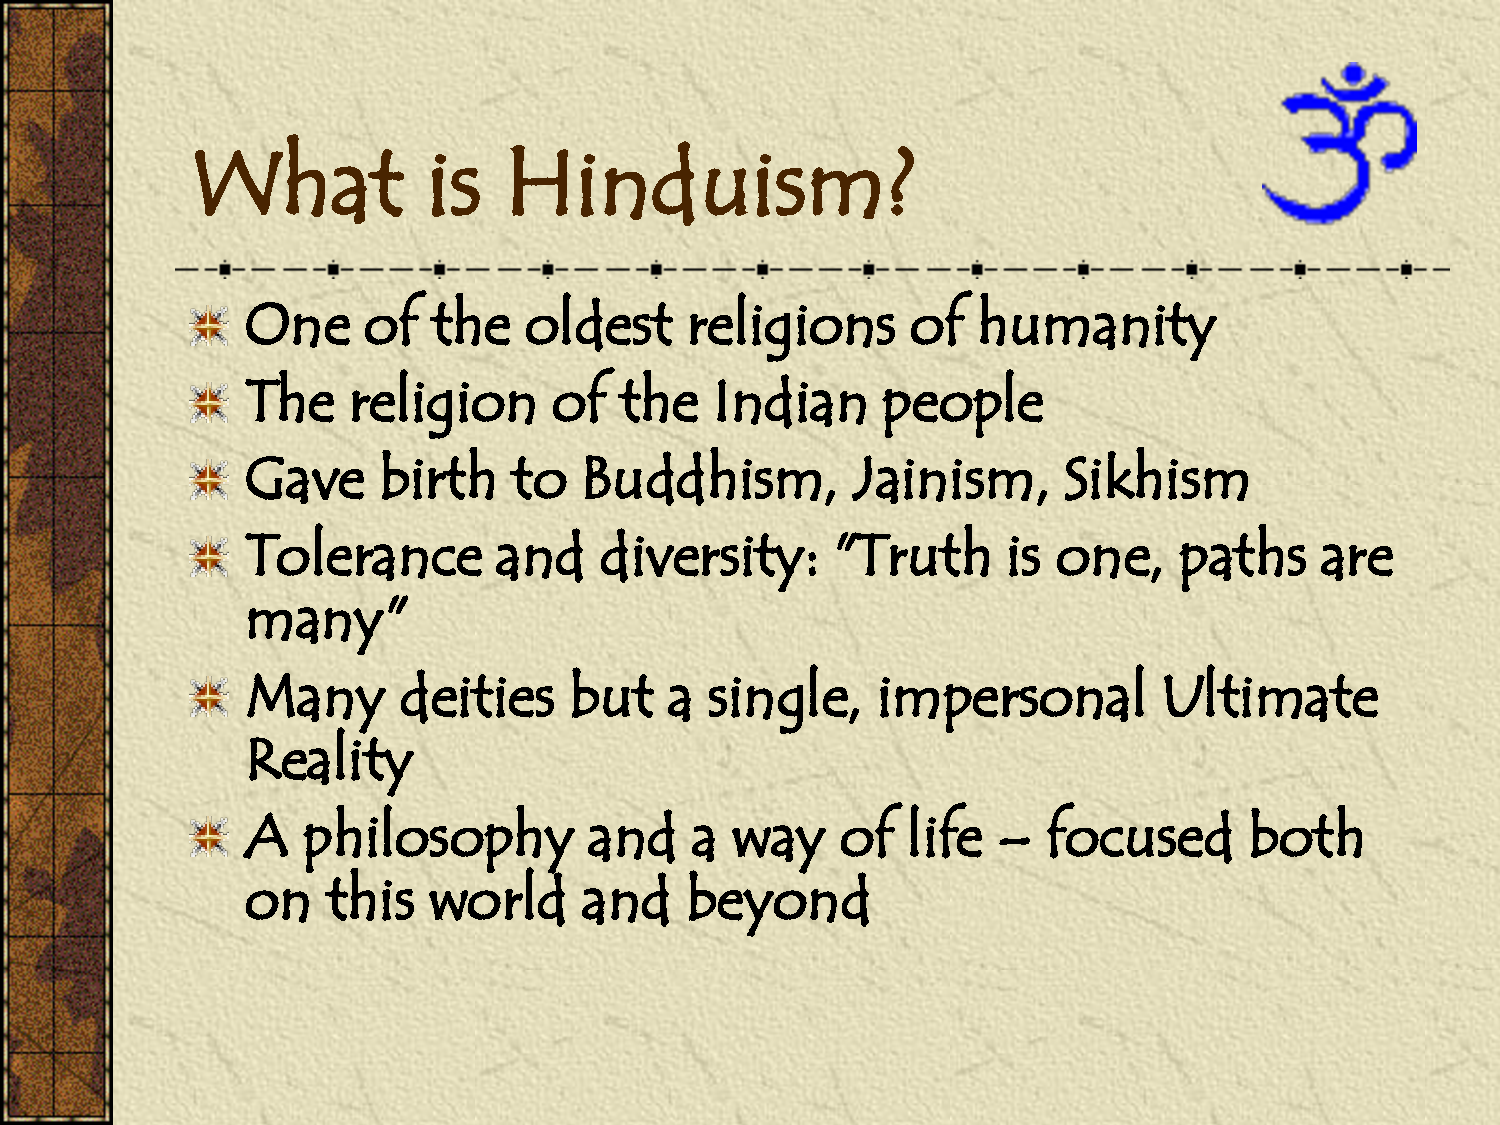 an analysis of hindus believed to be one of the oldest religions existing today Indeed, because hinduism is one of the religions that views time as cyclical rather than linear, what information is available about hinduism does not give a very accurate picture of its history (bass 5) hat can be gleaned from this history is the fact that hinduism is one of the oldest religions with one of the oldest societies in the world.